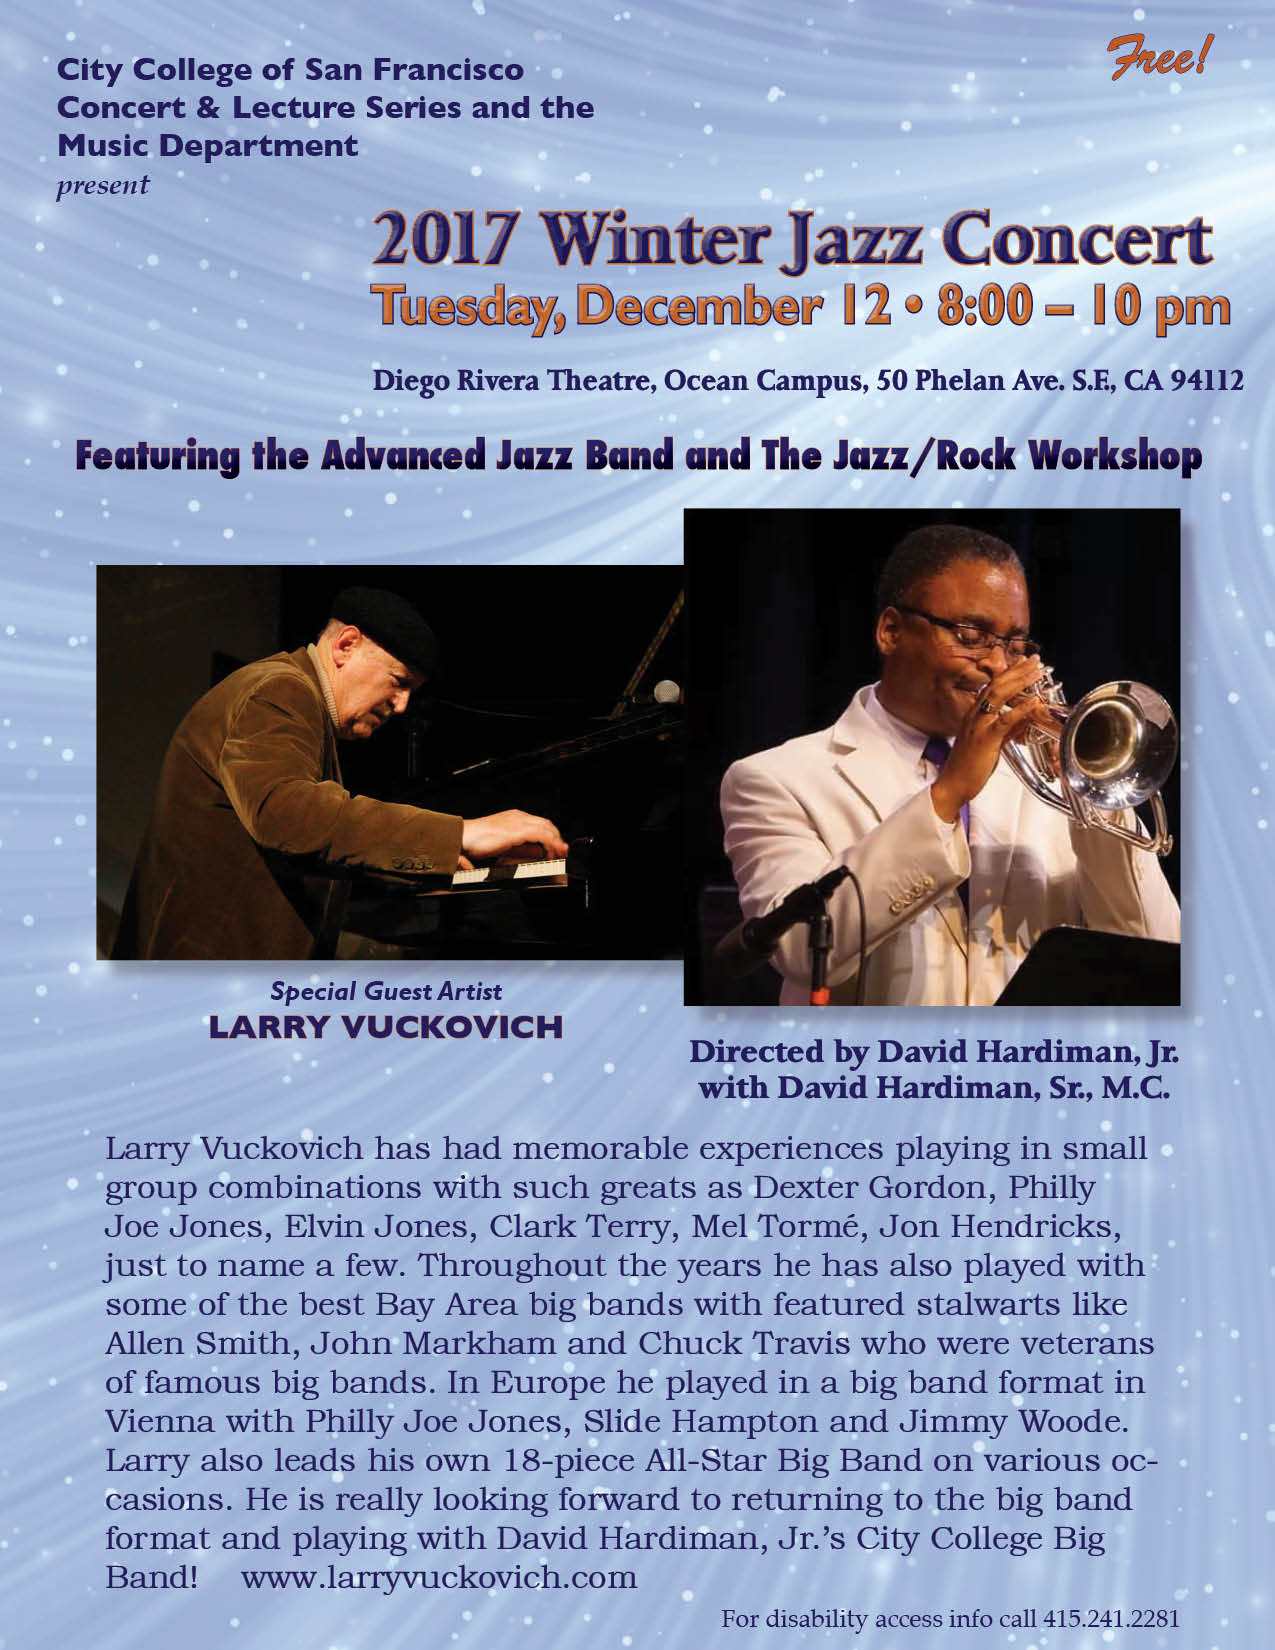 Larry Vuckovich - Internationally Acclaimed Jazz Pianist